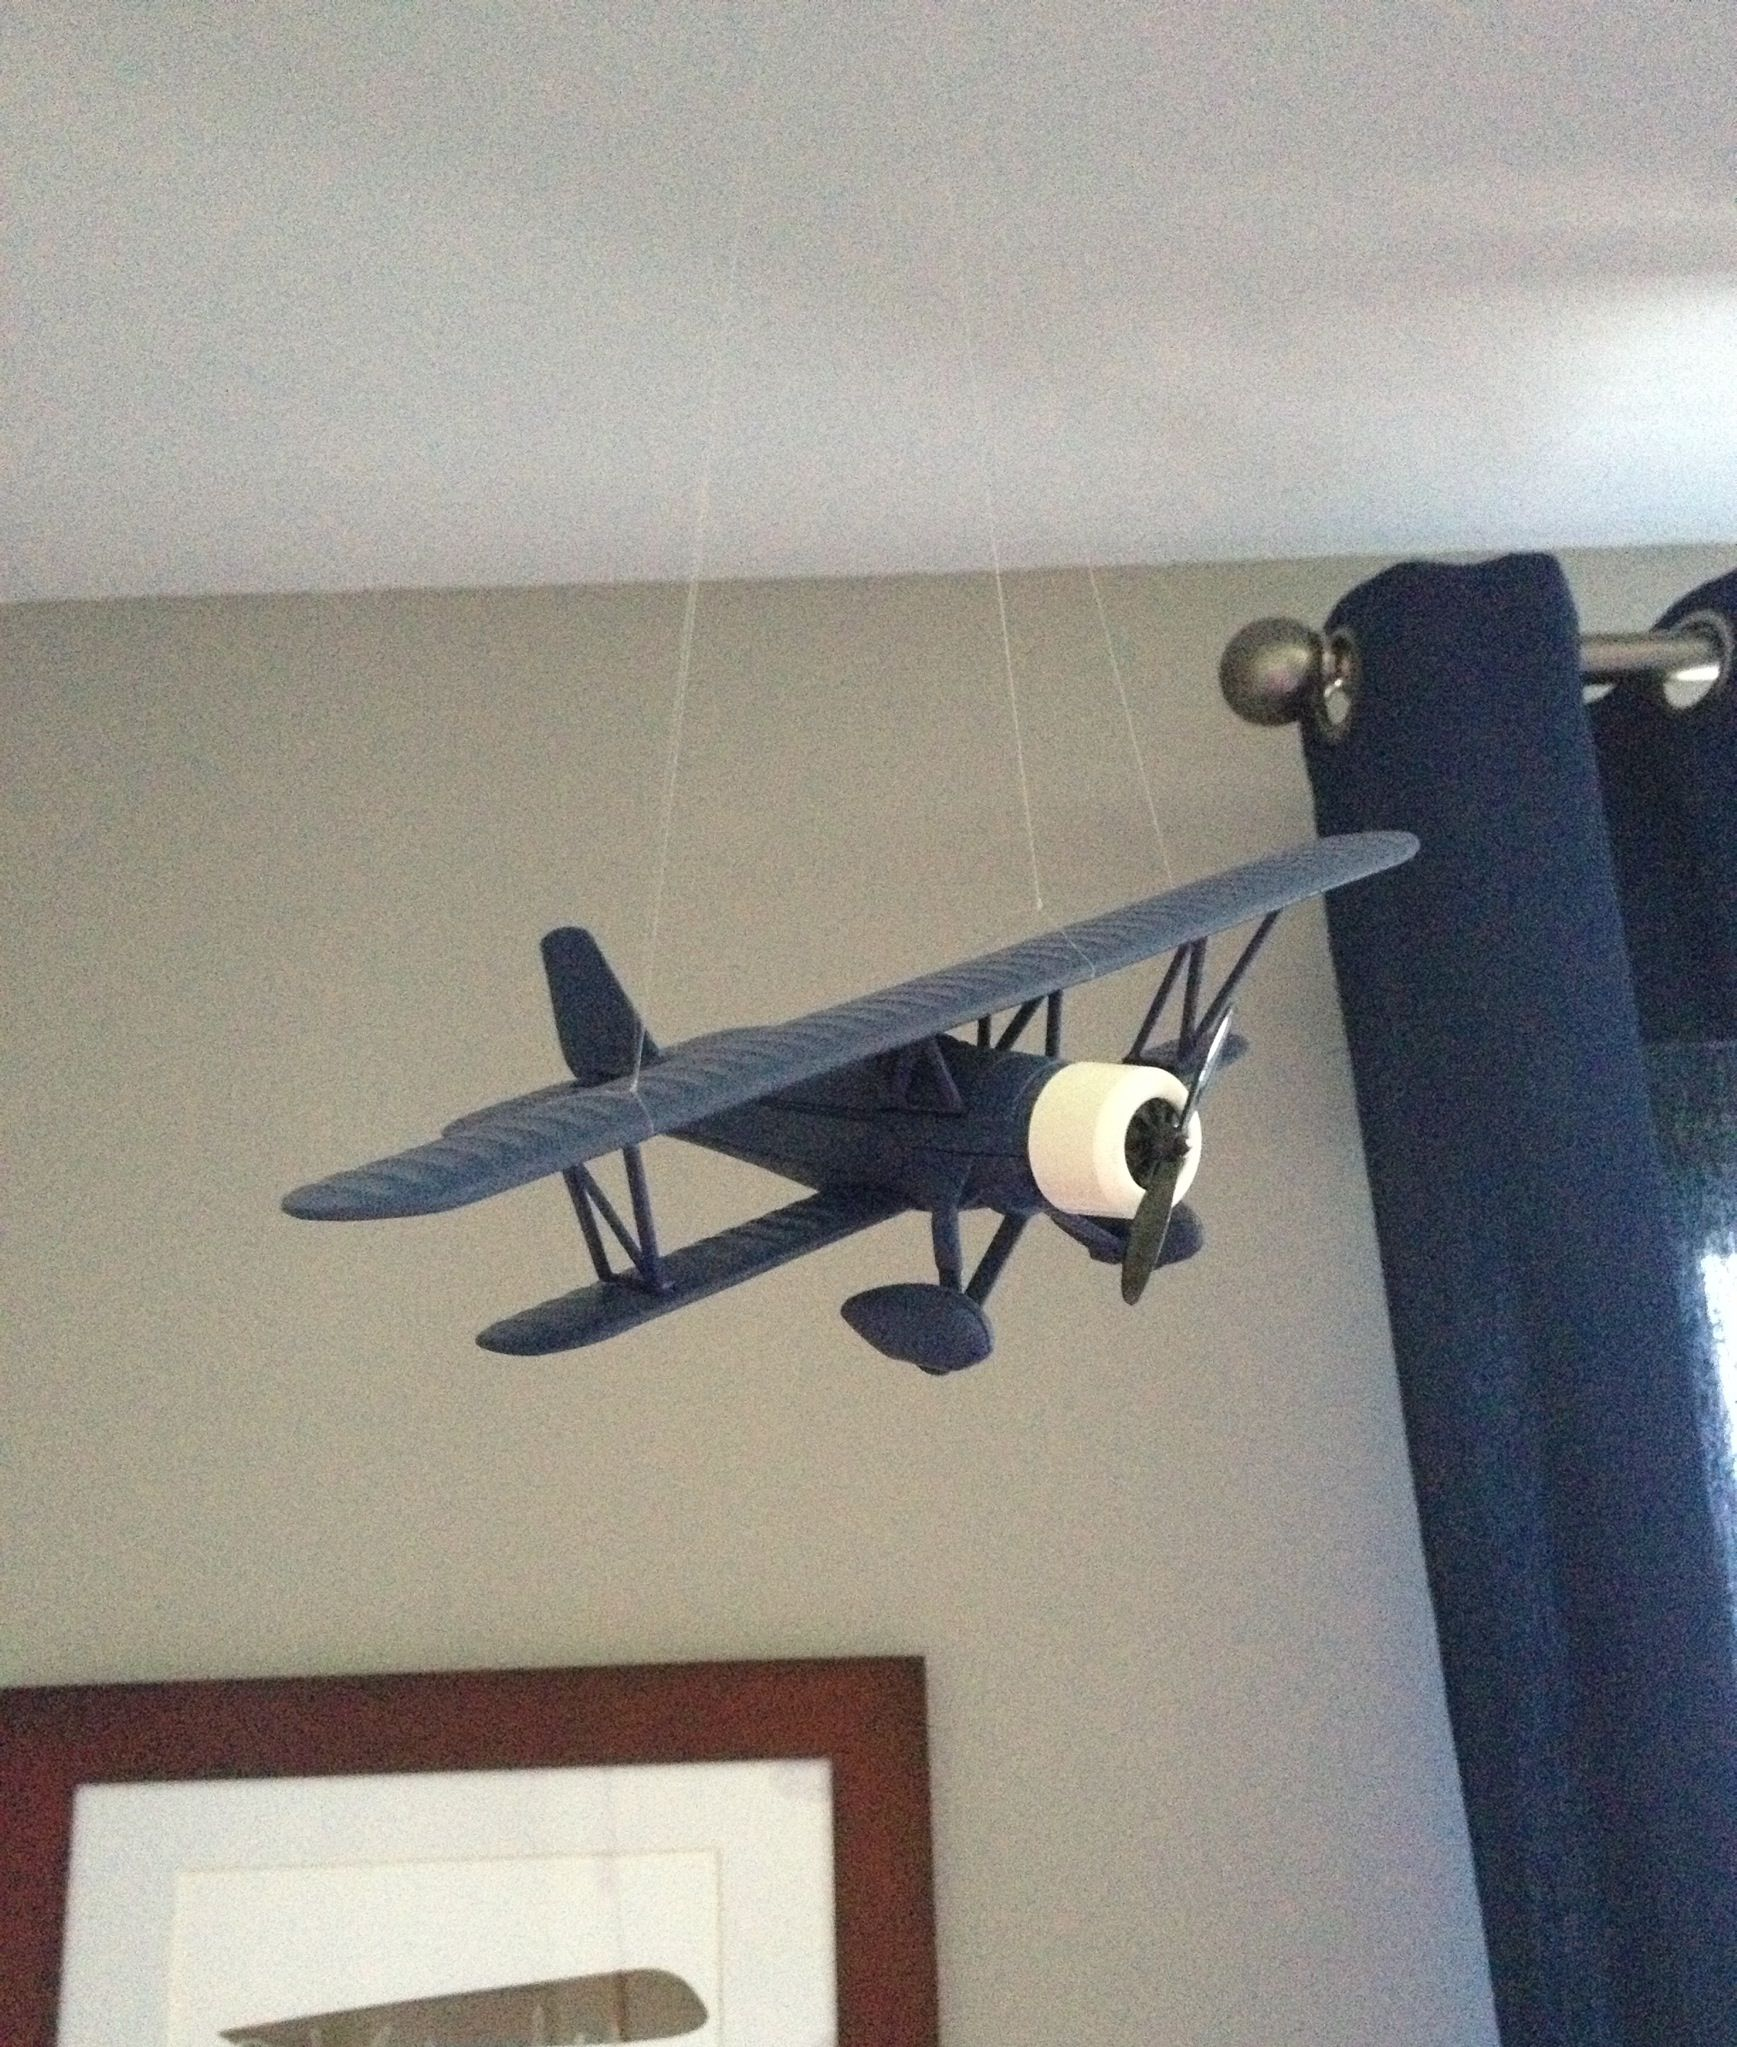 Airplane Bedrooms Hanging Airplanes From Ceiling Studs With Fishing Line